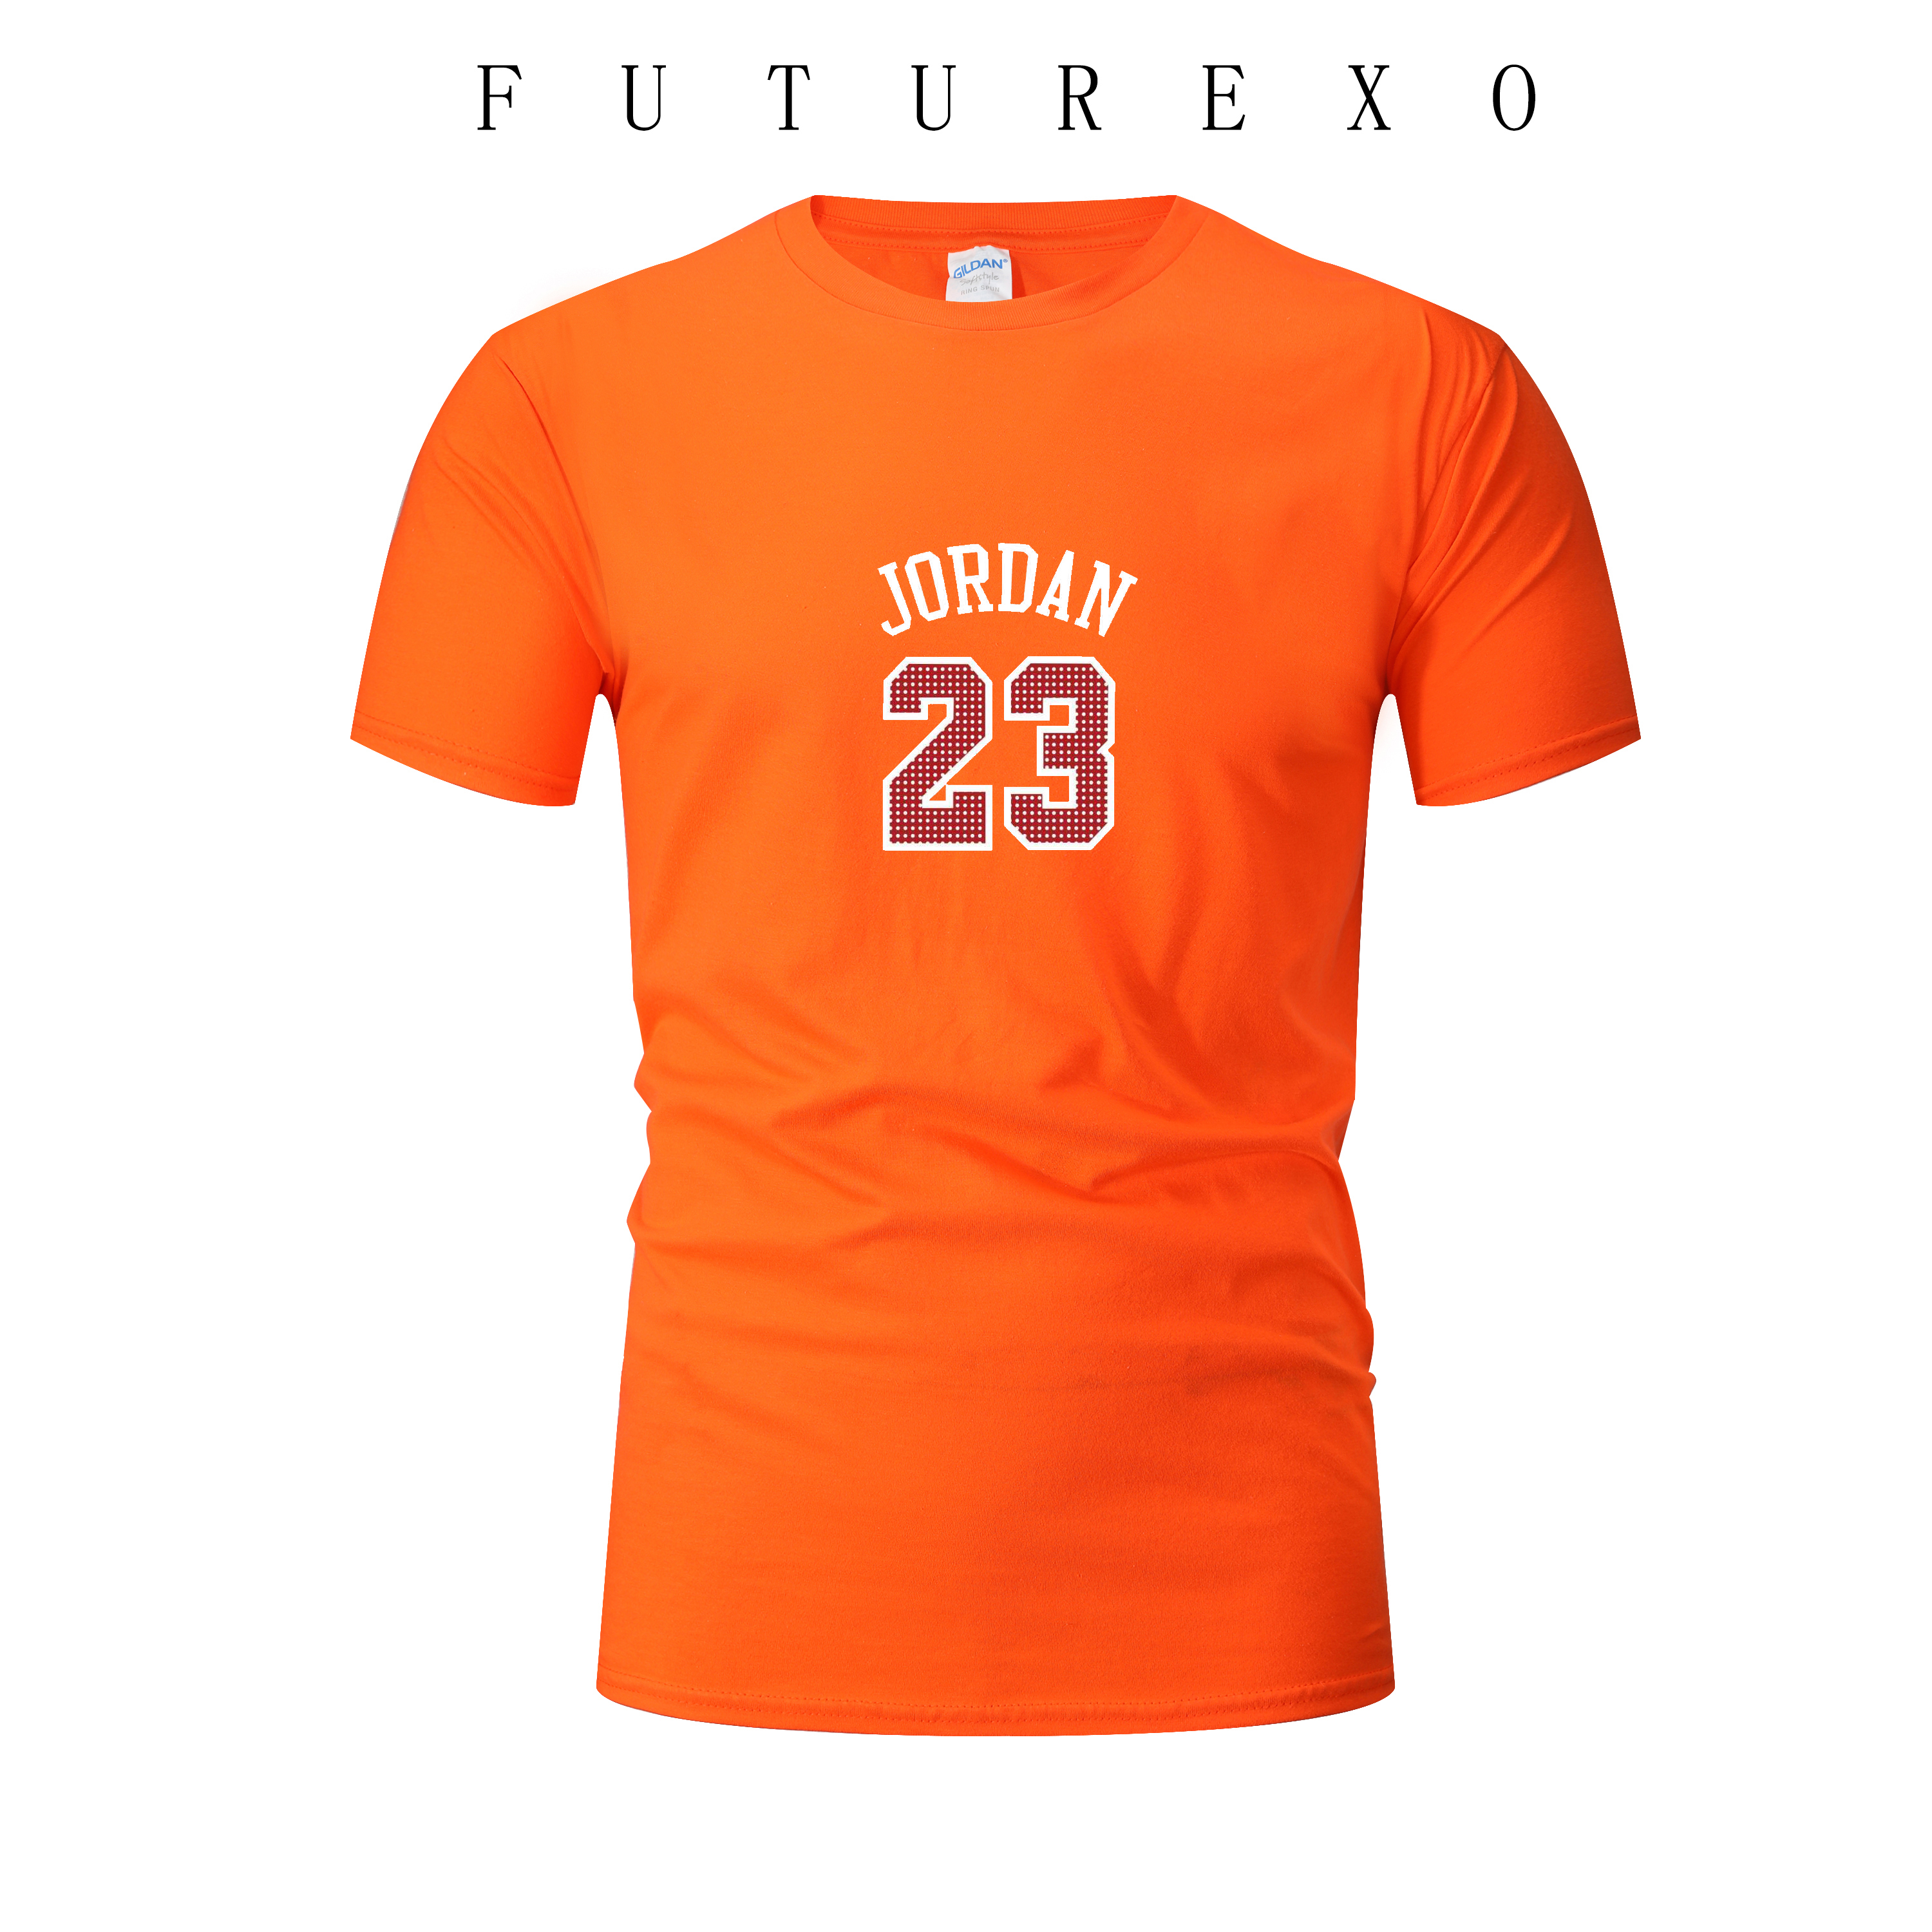 Men's new summer basketball sports T-shirt fashion <font><b>Jordan</b></font> <font><b>23</b></font> print casual T-shirt youth campus court T-shirt running T-shirt image